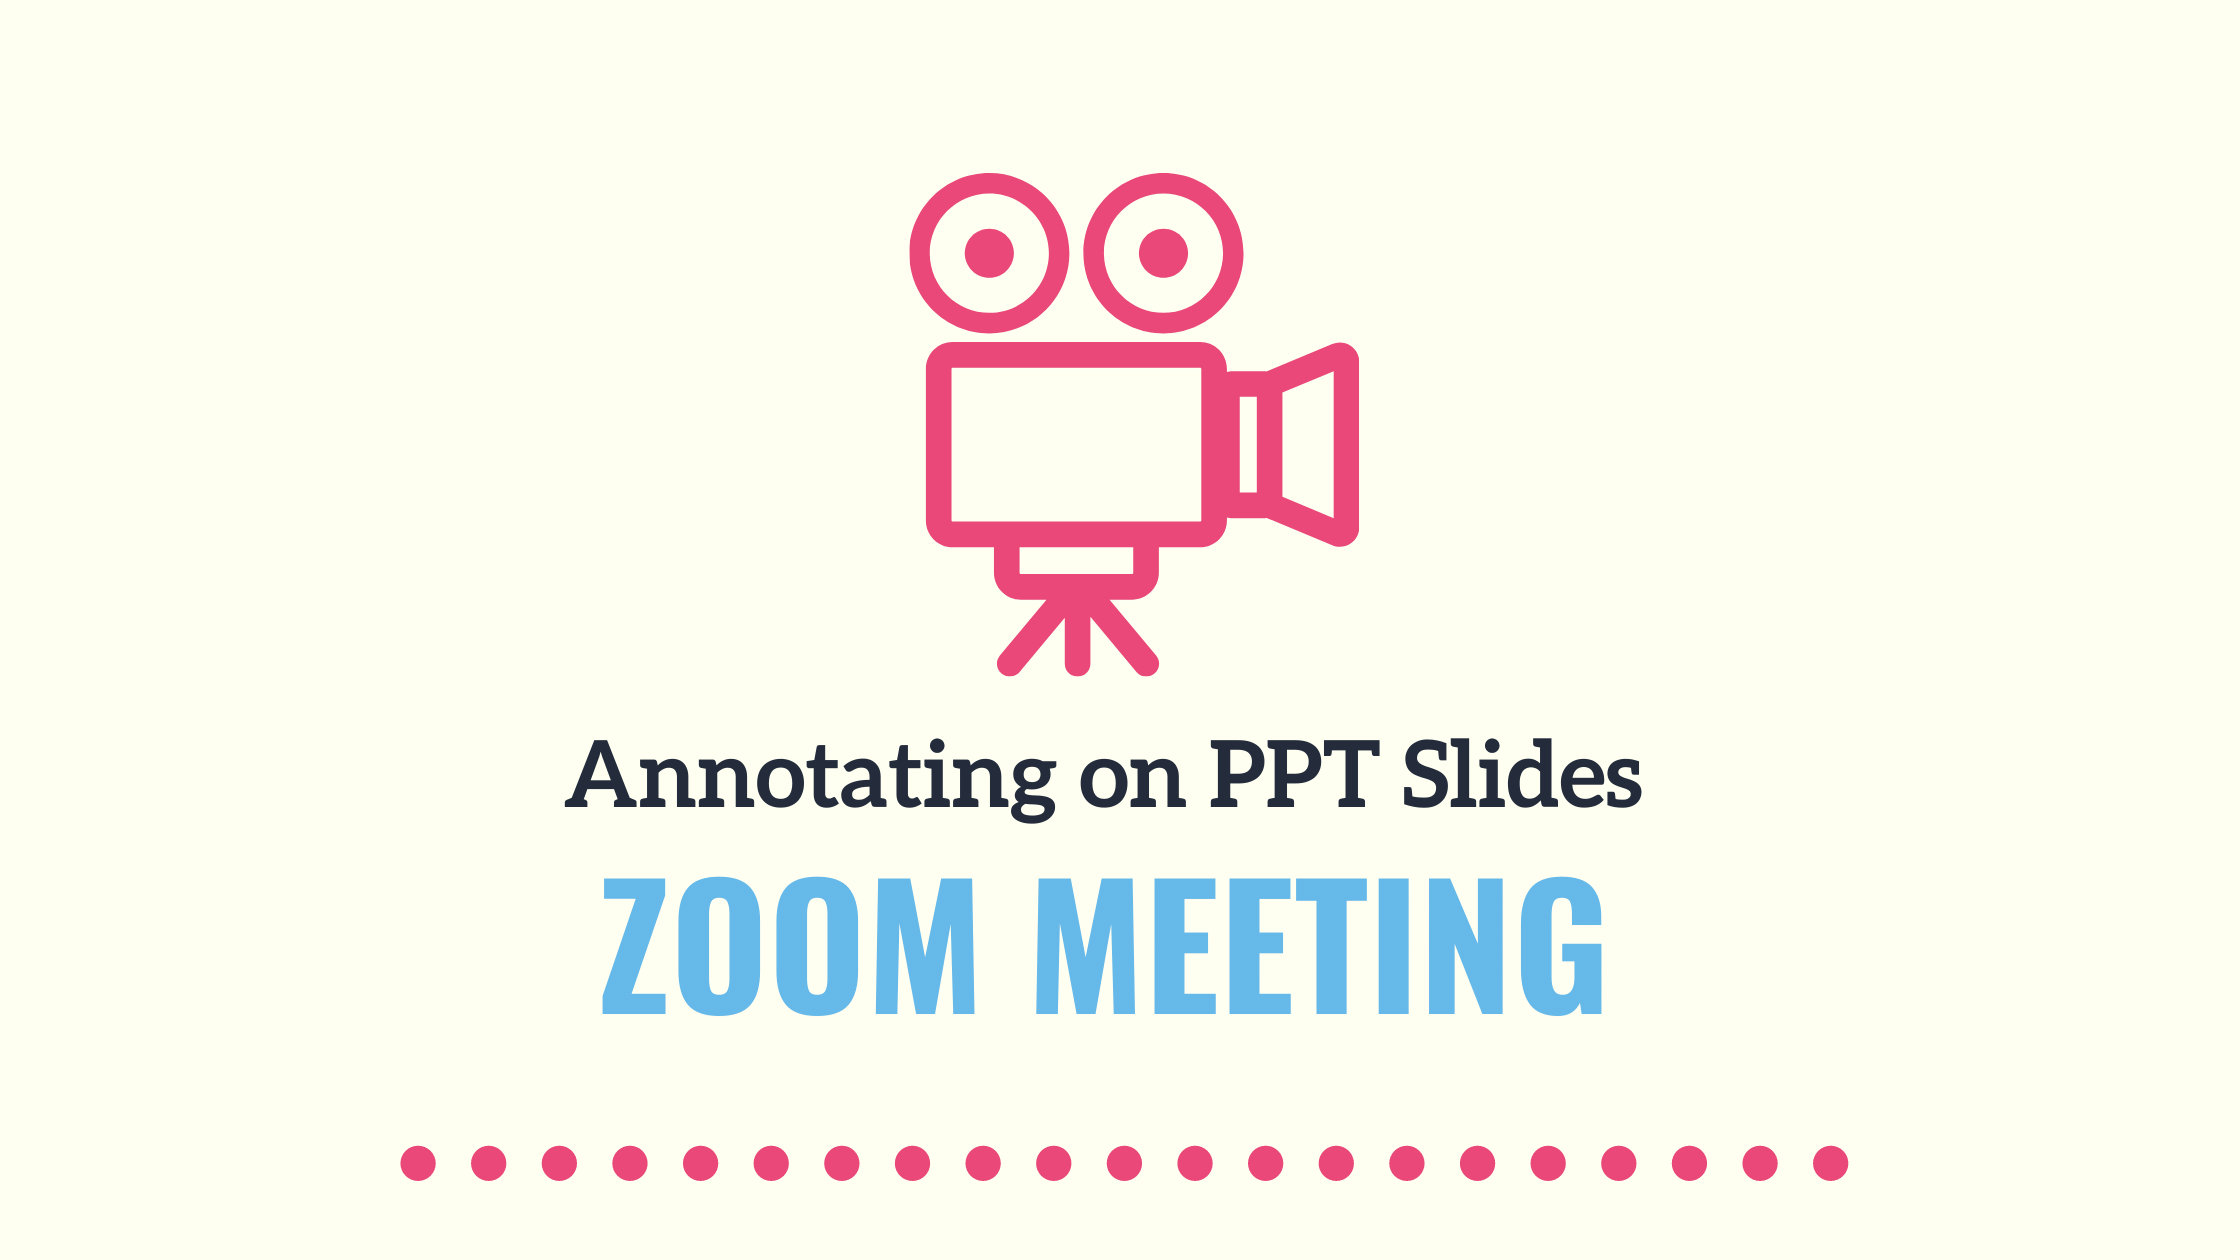 Writing(Annotating) on PPT slides during a zoom meeting.